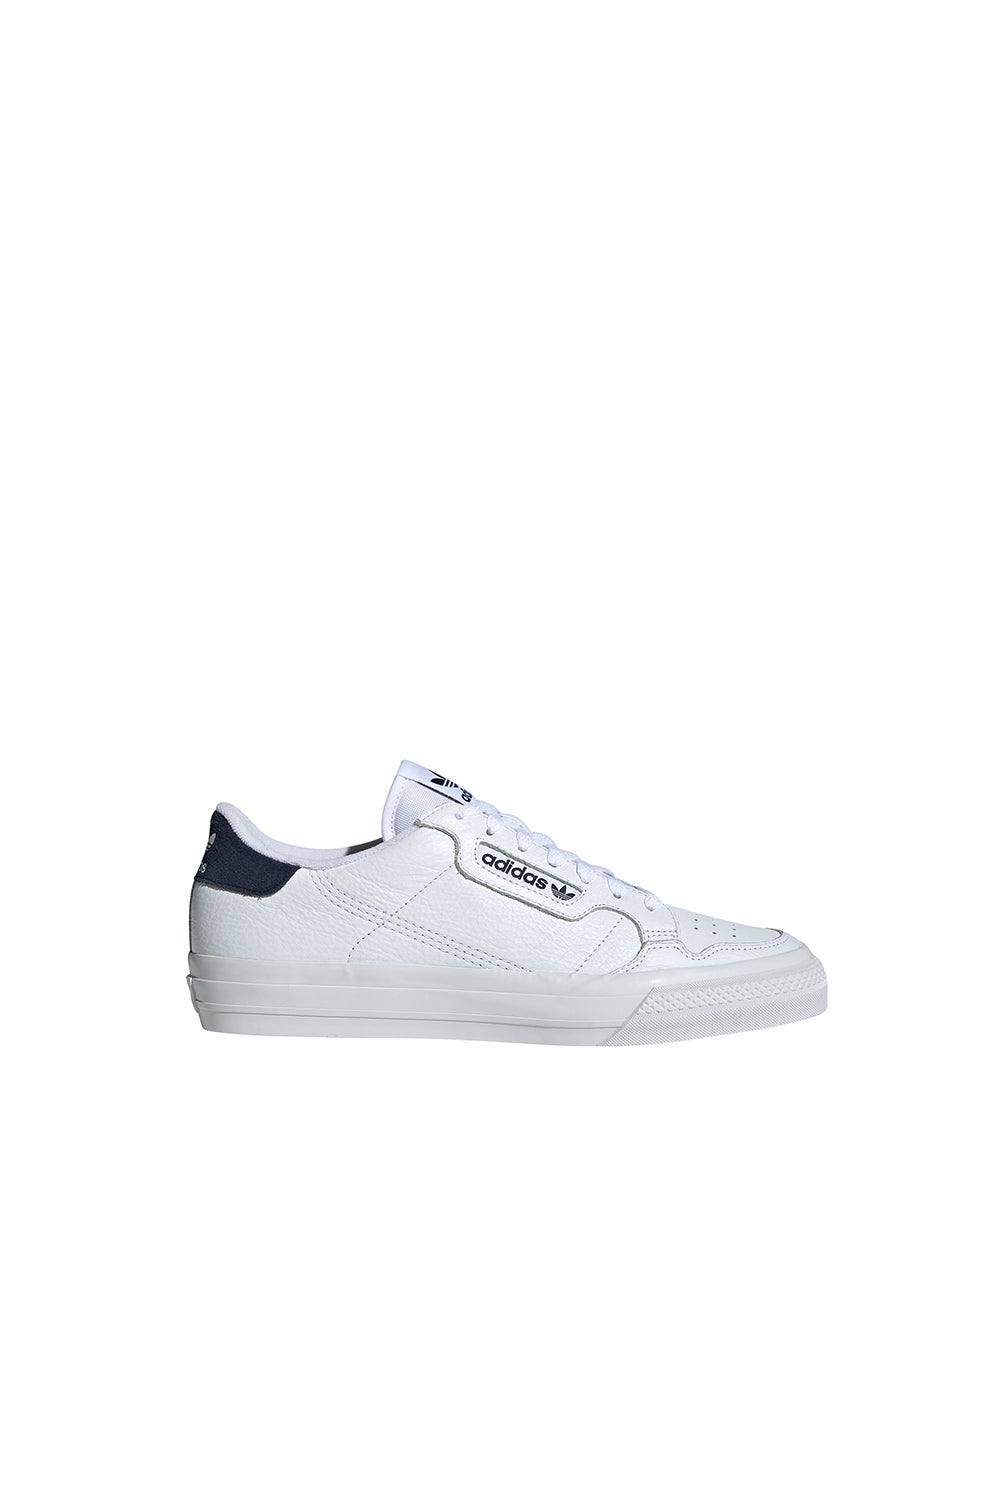 adidas Continental Vulc White/Collegiate Navy